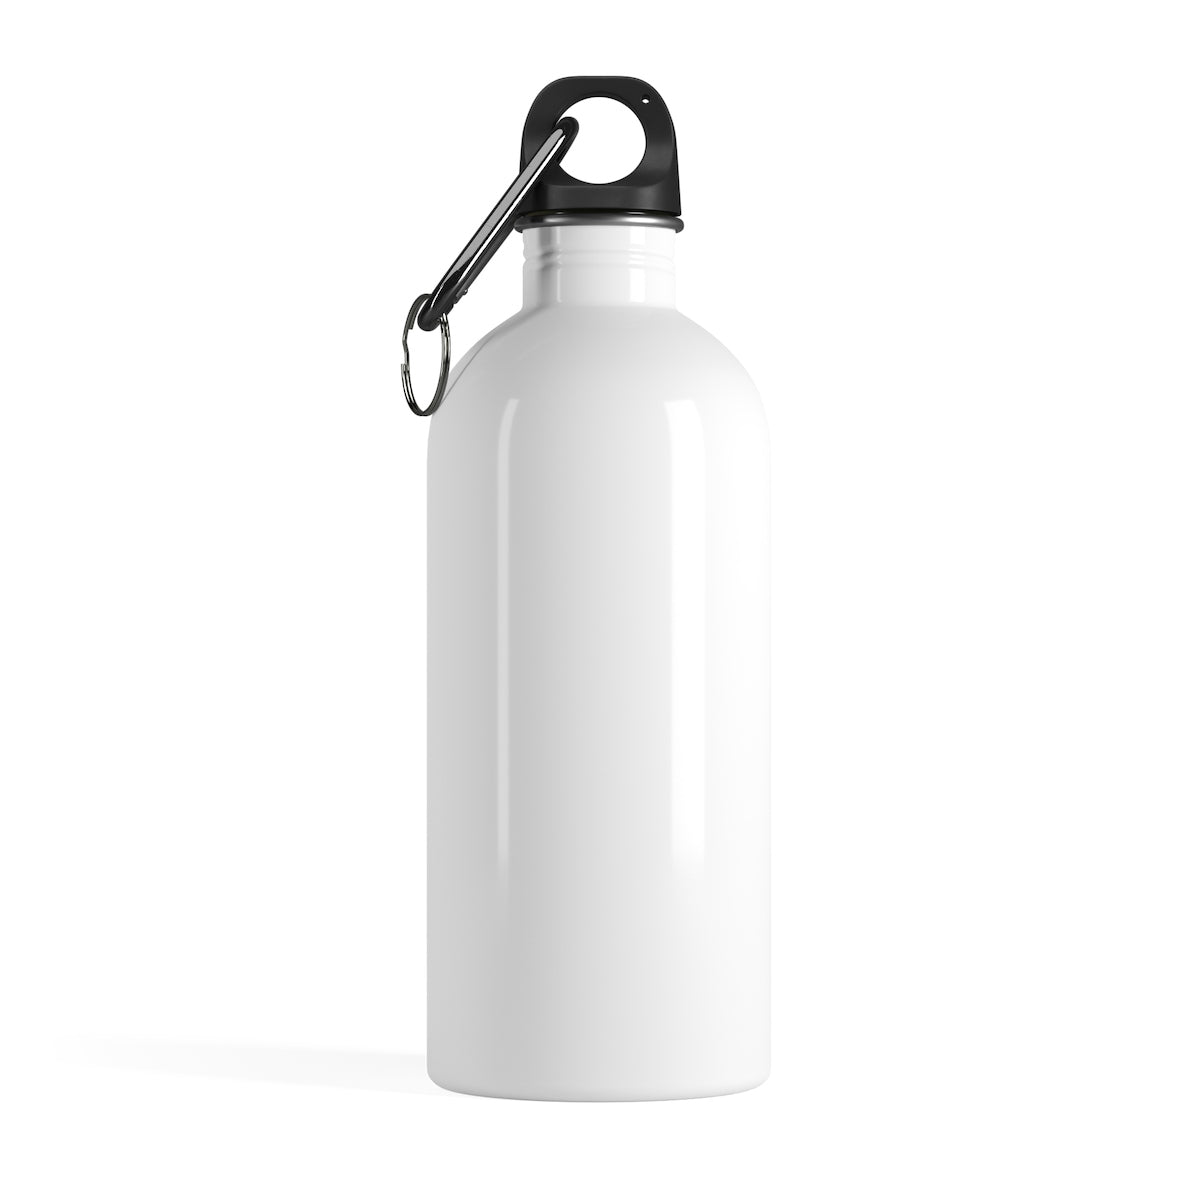 Well Stainless Steel Bottle - Well World Official